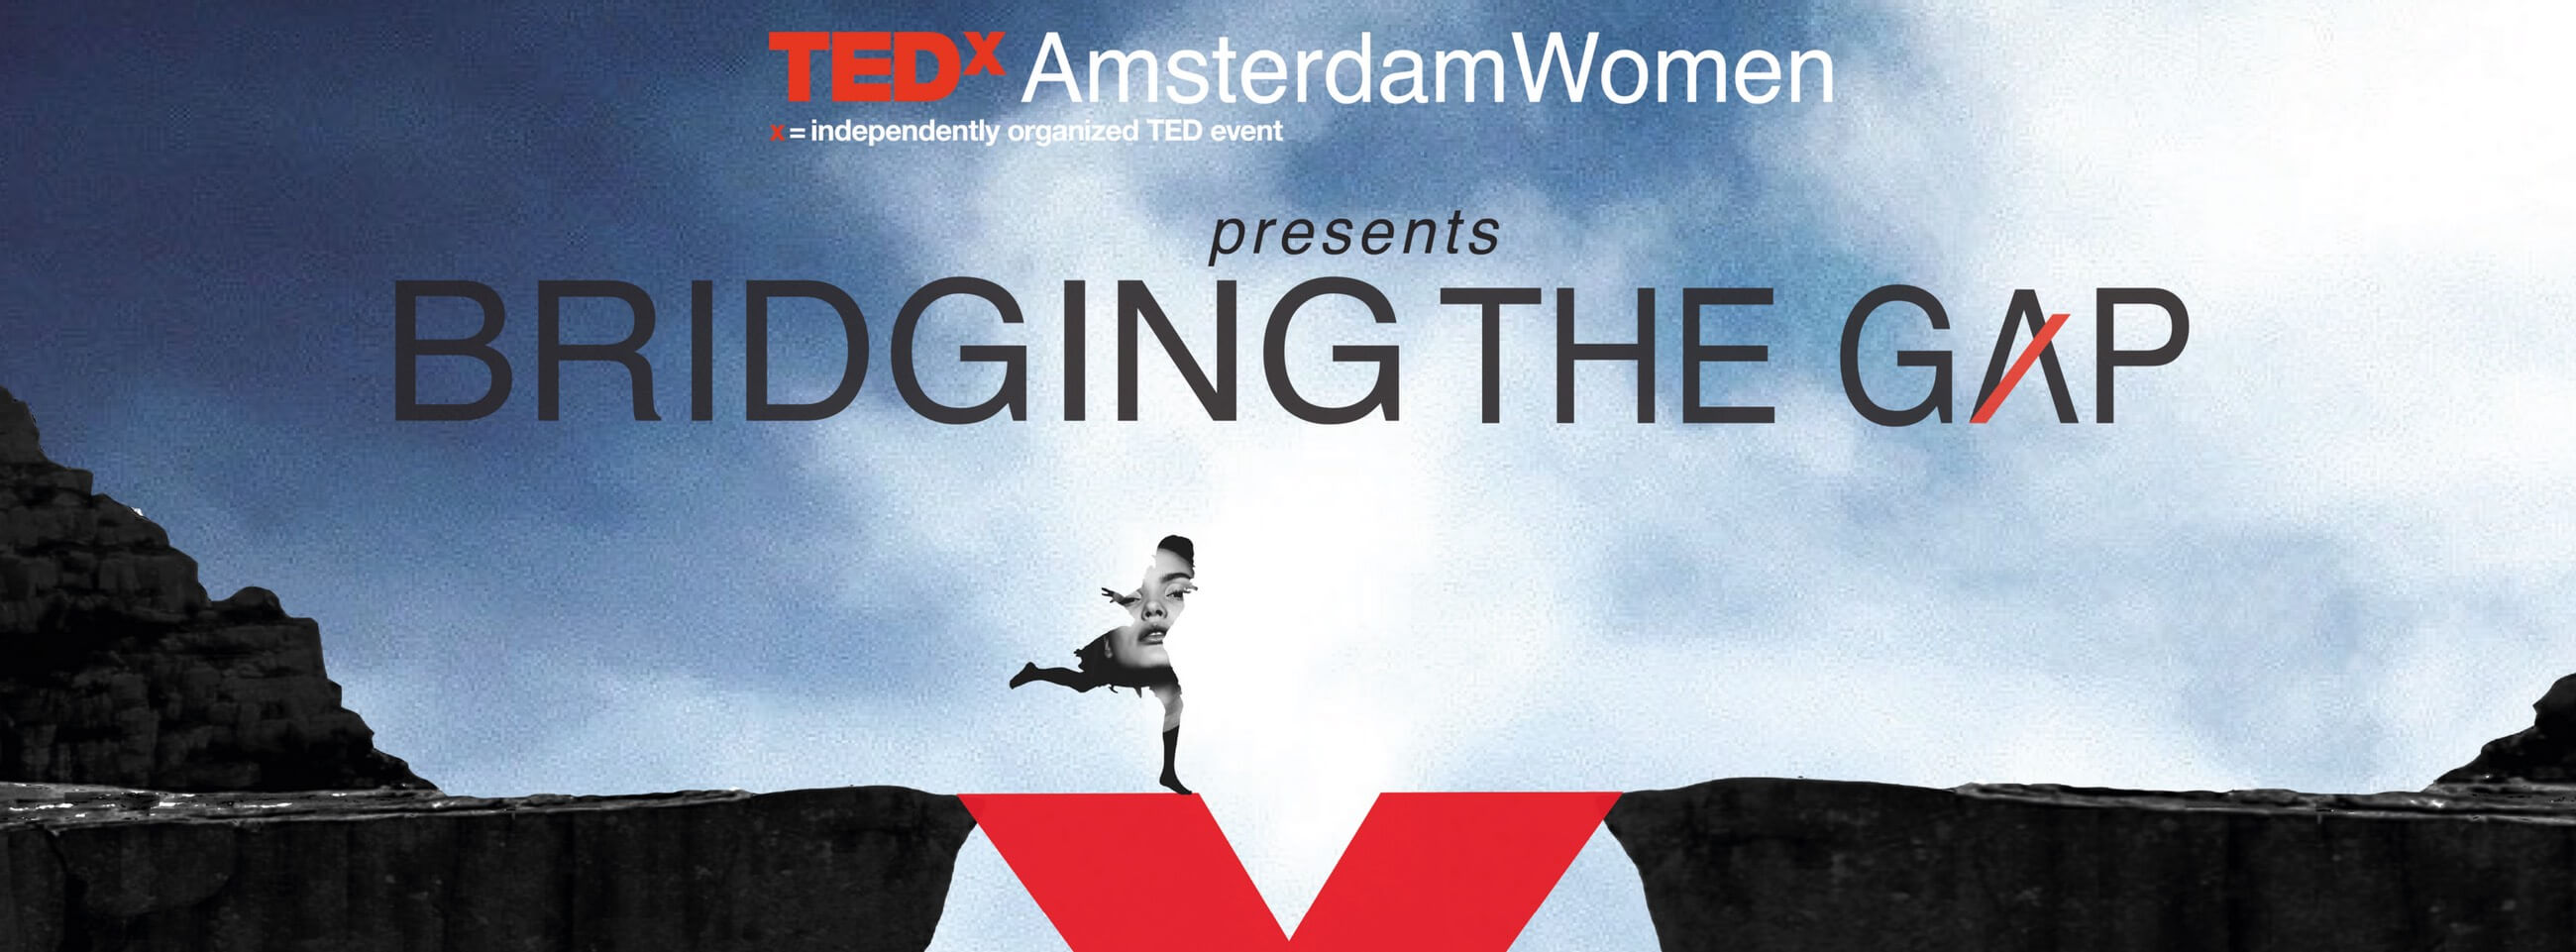 Venopi is a Finalist for the TEDxAmsterdamWomen Start Up Award!